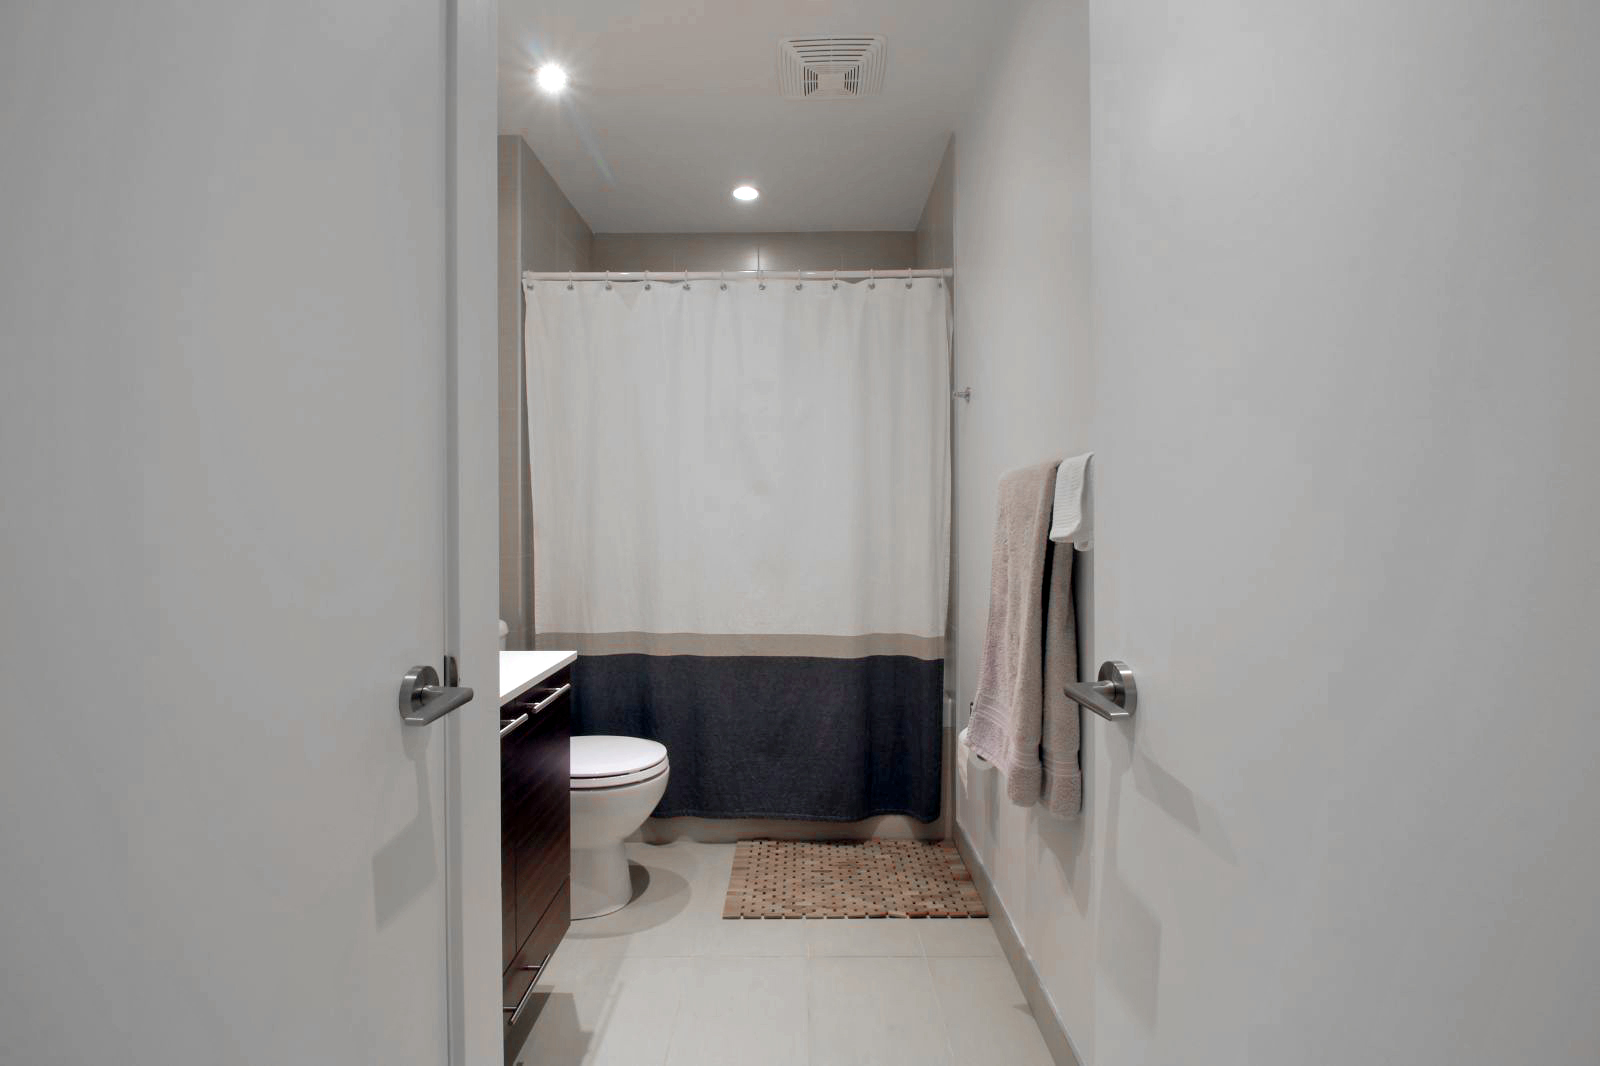 10 - Bathroom 1.jpg